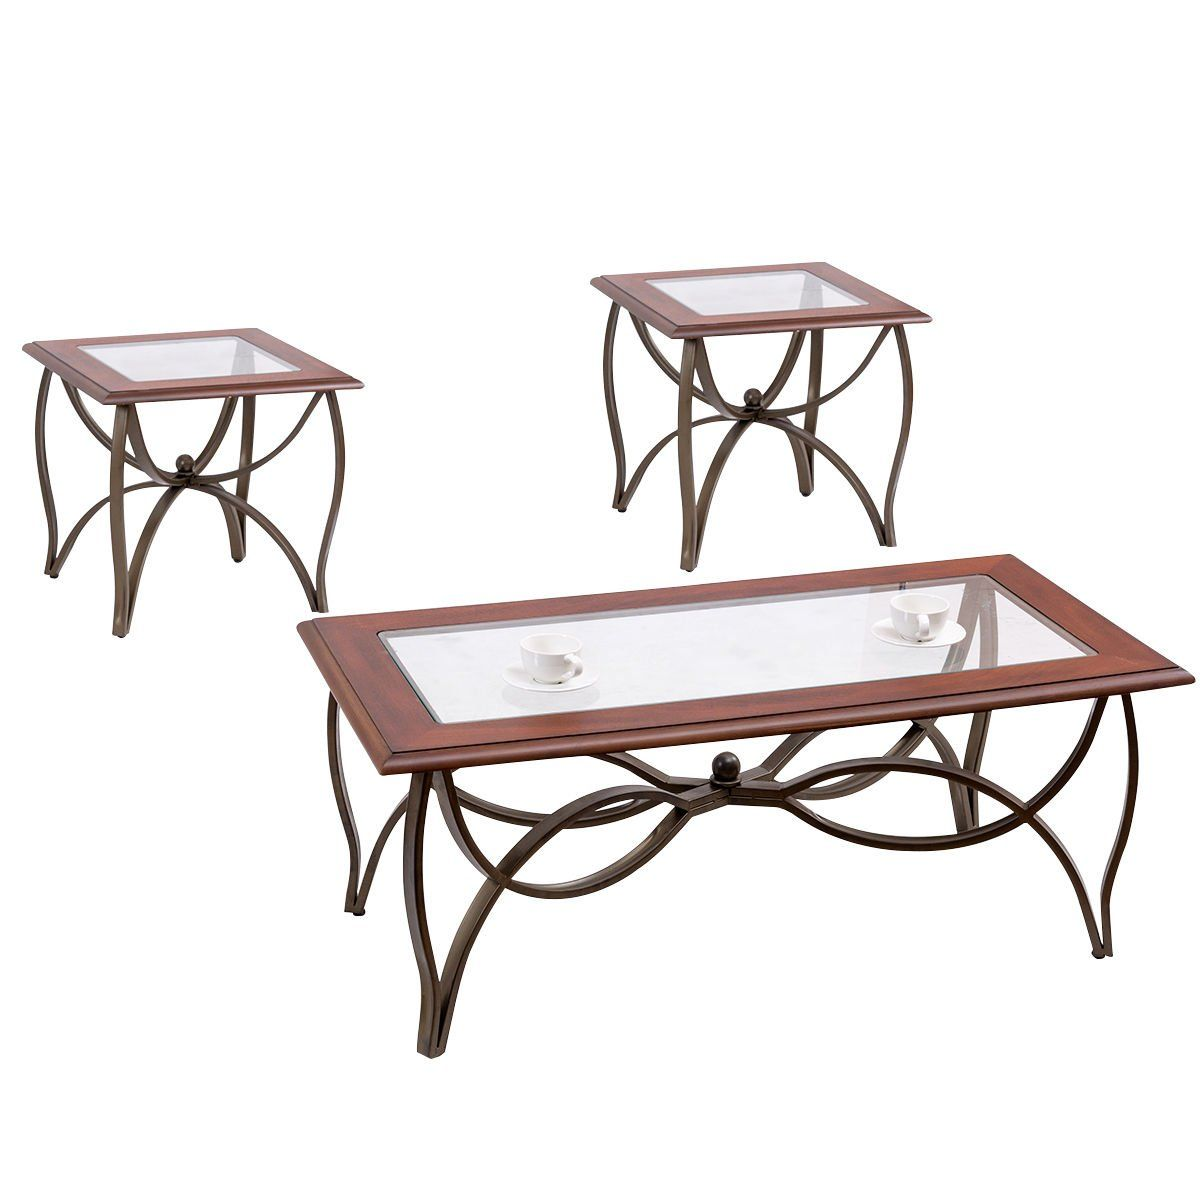 Tangkula Glass Coffee Table Set Occasional Cocktail Table Set Glass Top Coffee Table And 2 End Table Coffee Table Setting End Table Sets Glass Top Coffee Table [ 1200 x 1200 Pixel ]